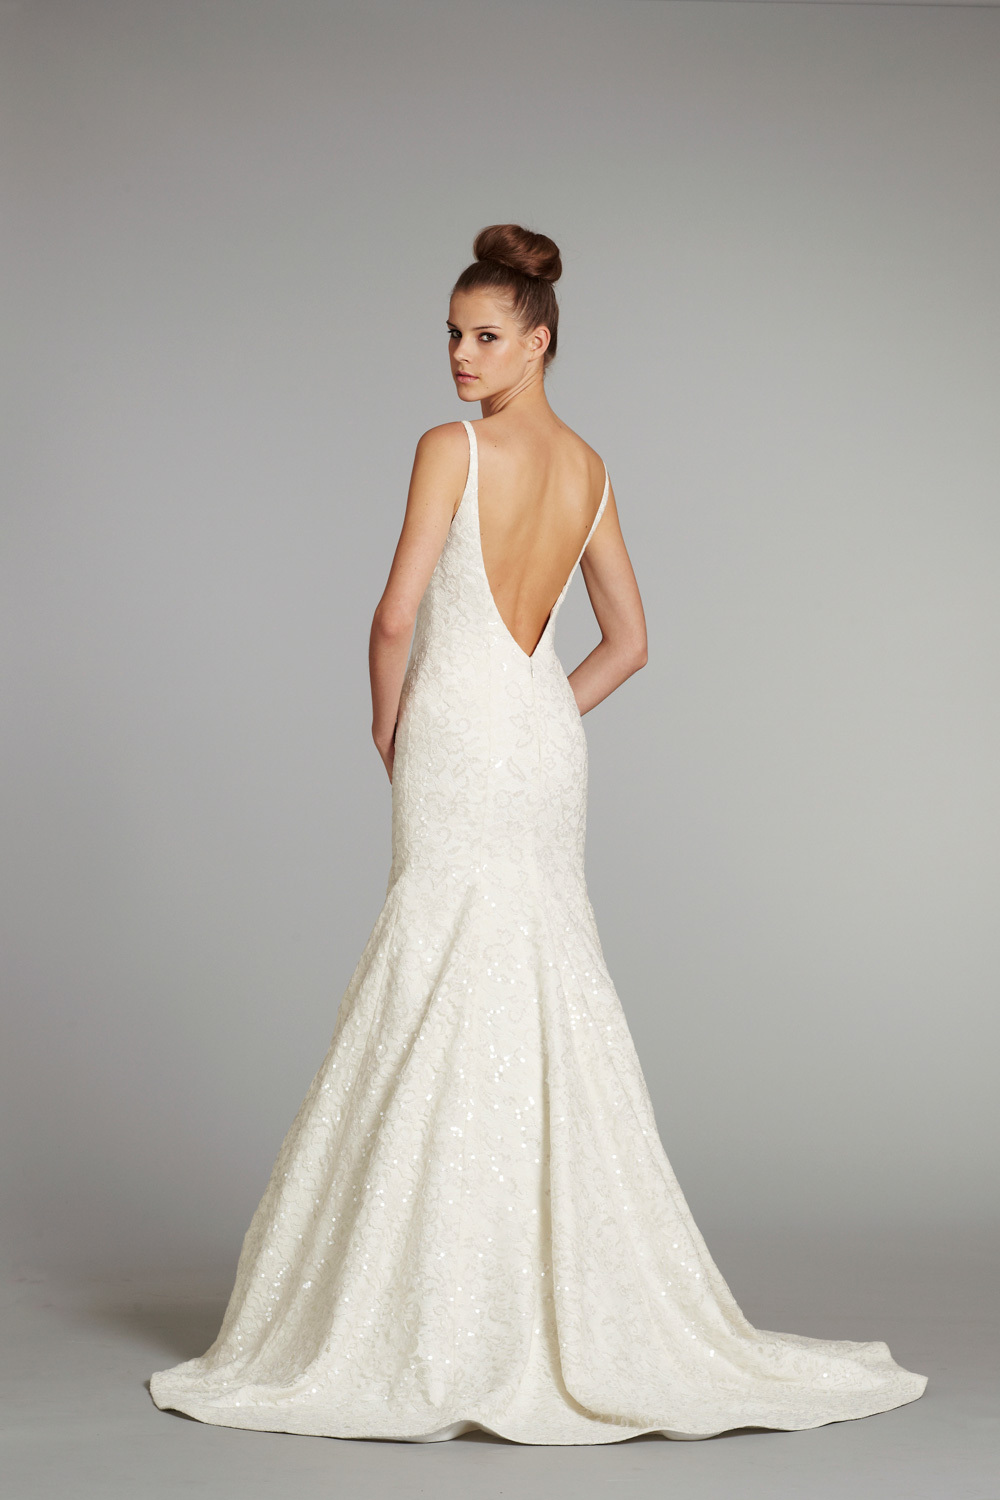 Bridal-gown-wedding-dress-jlm-hayley-paige-fall-2012-vanna-back.full